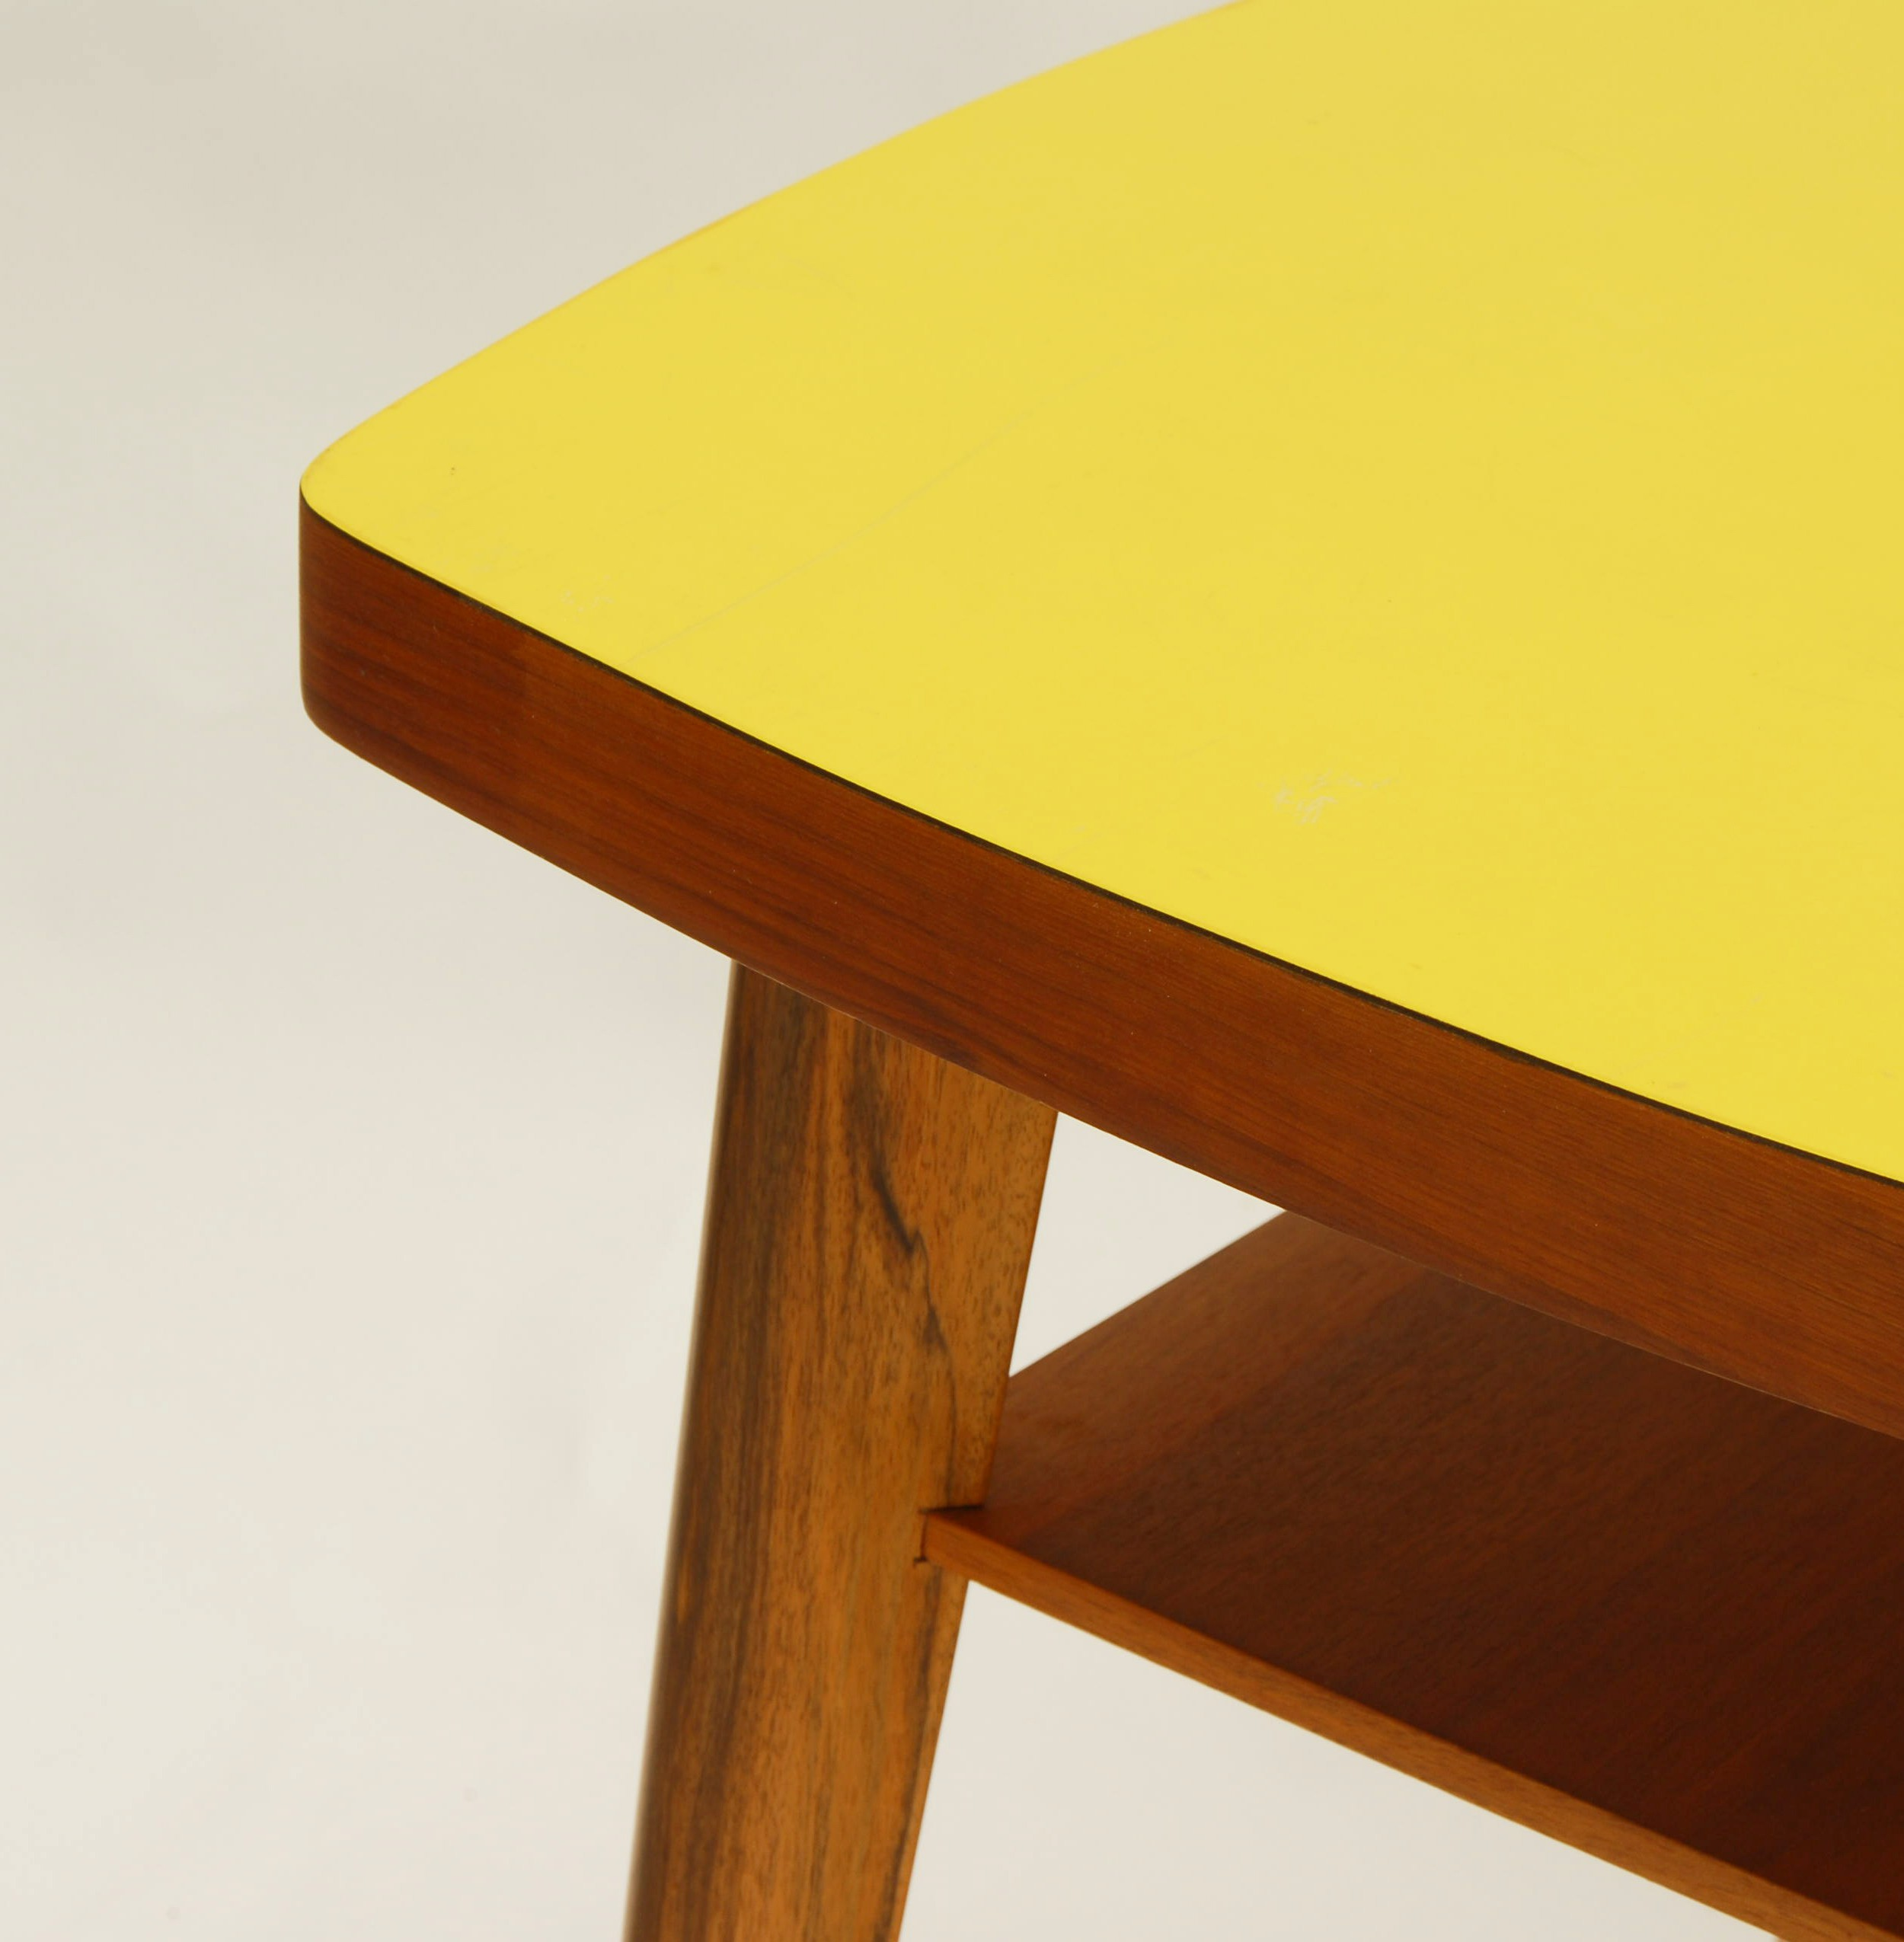 Table Basse En Formica square yellow coffee table in formica with shelf - 1960s